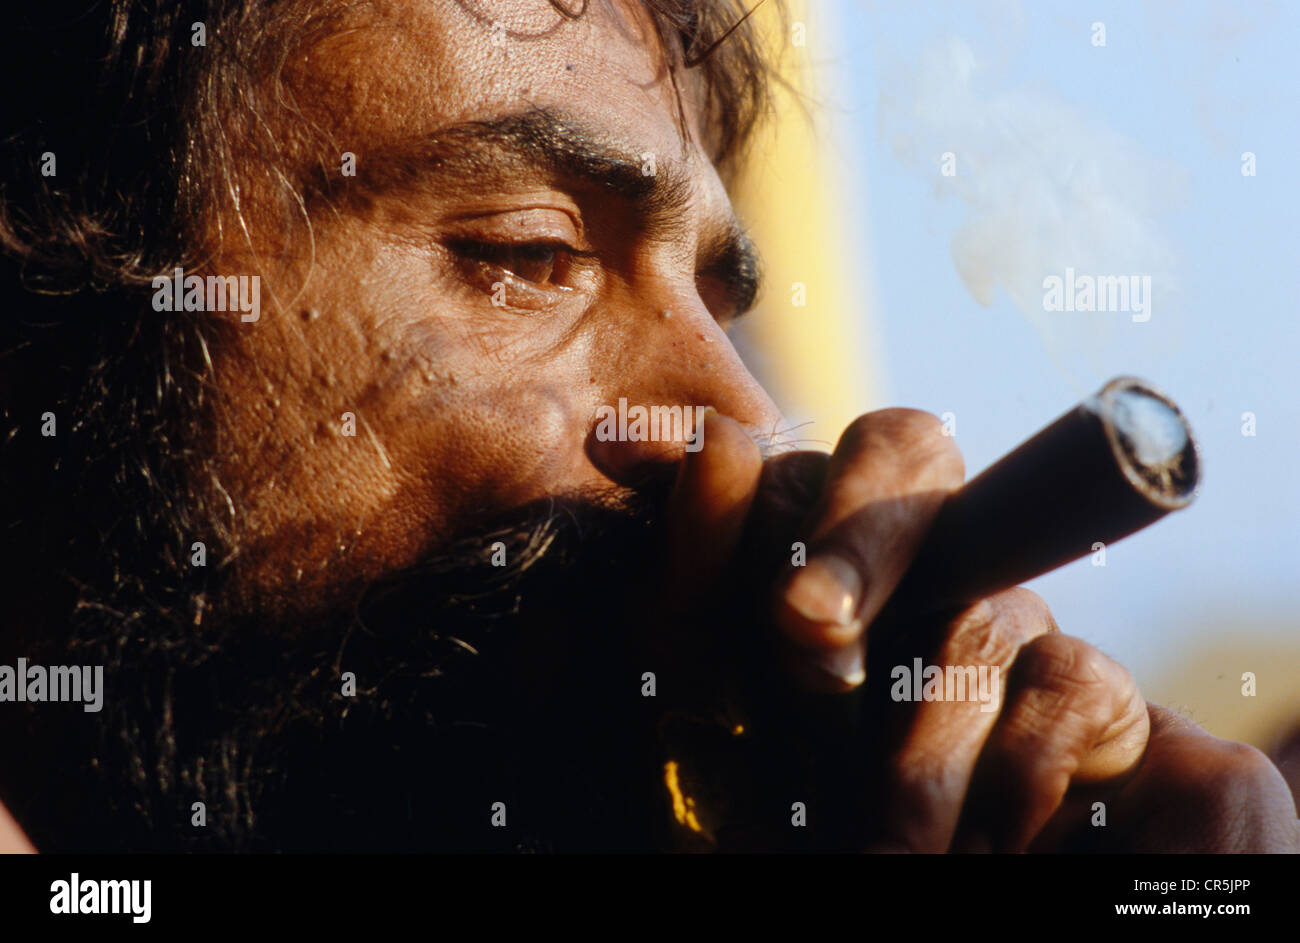 Smoking Ganja is illegal, but Sadhus refer to Shiva to have been smoking too, Varanasi, Uttar Pradesh, India, Asia - Stock Image